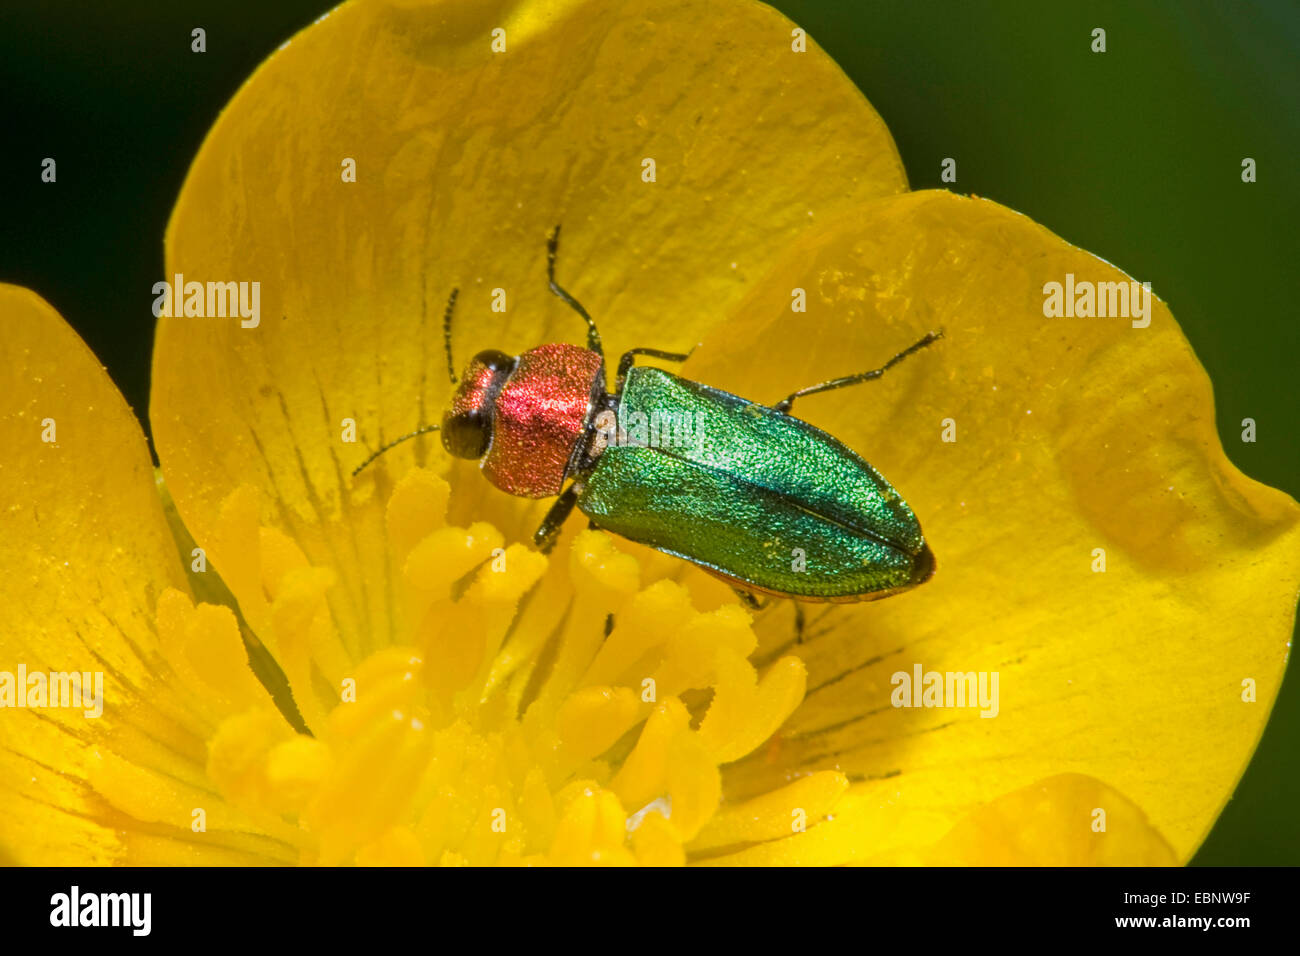 Jewel beetle, Metallic wood-boring beetle (Anthaxia nitidula), on a yellow flower, Germany - Stock Image